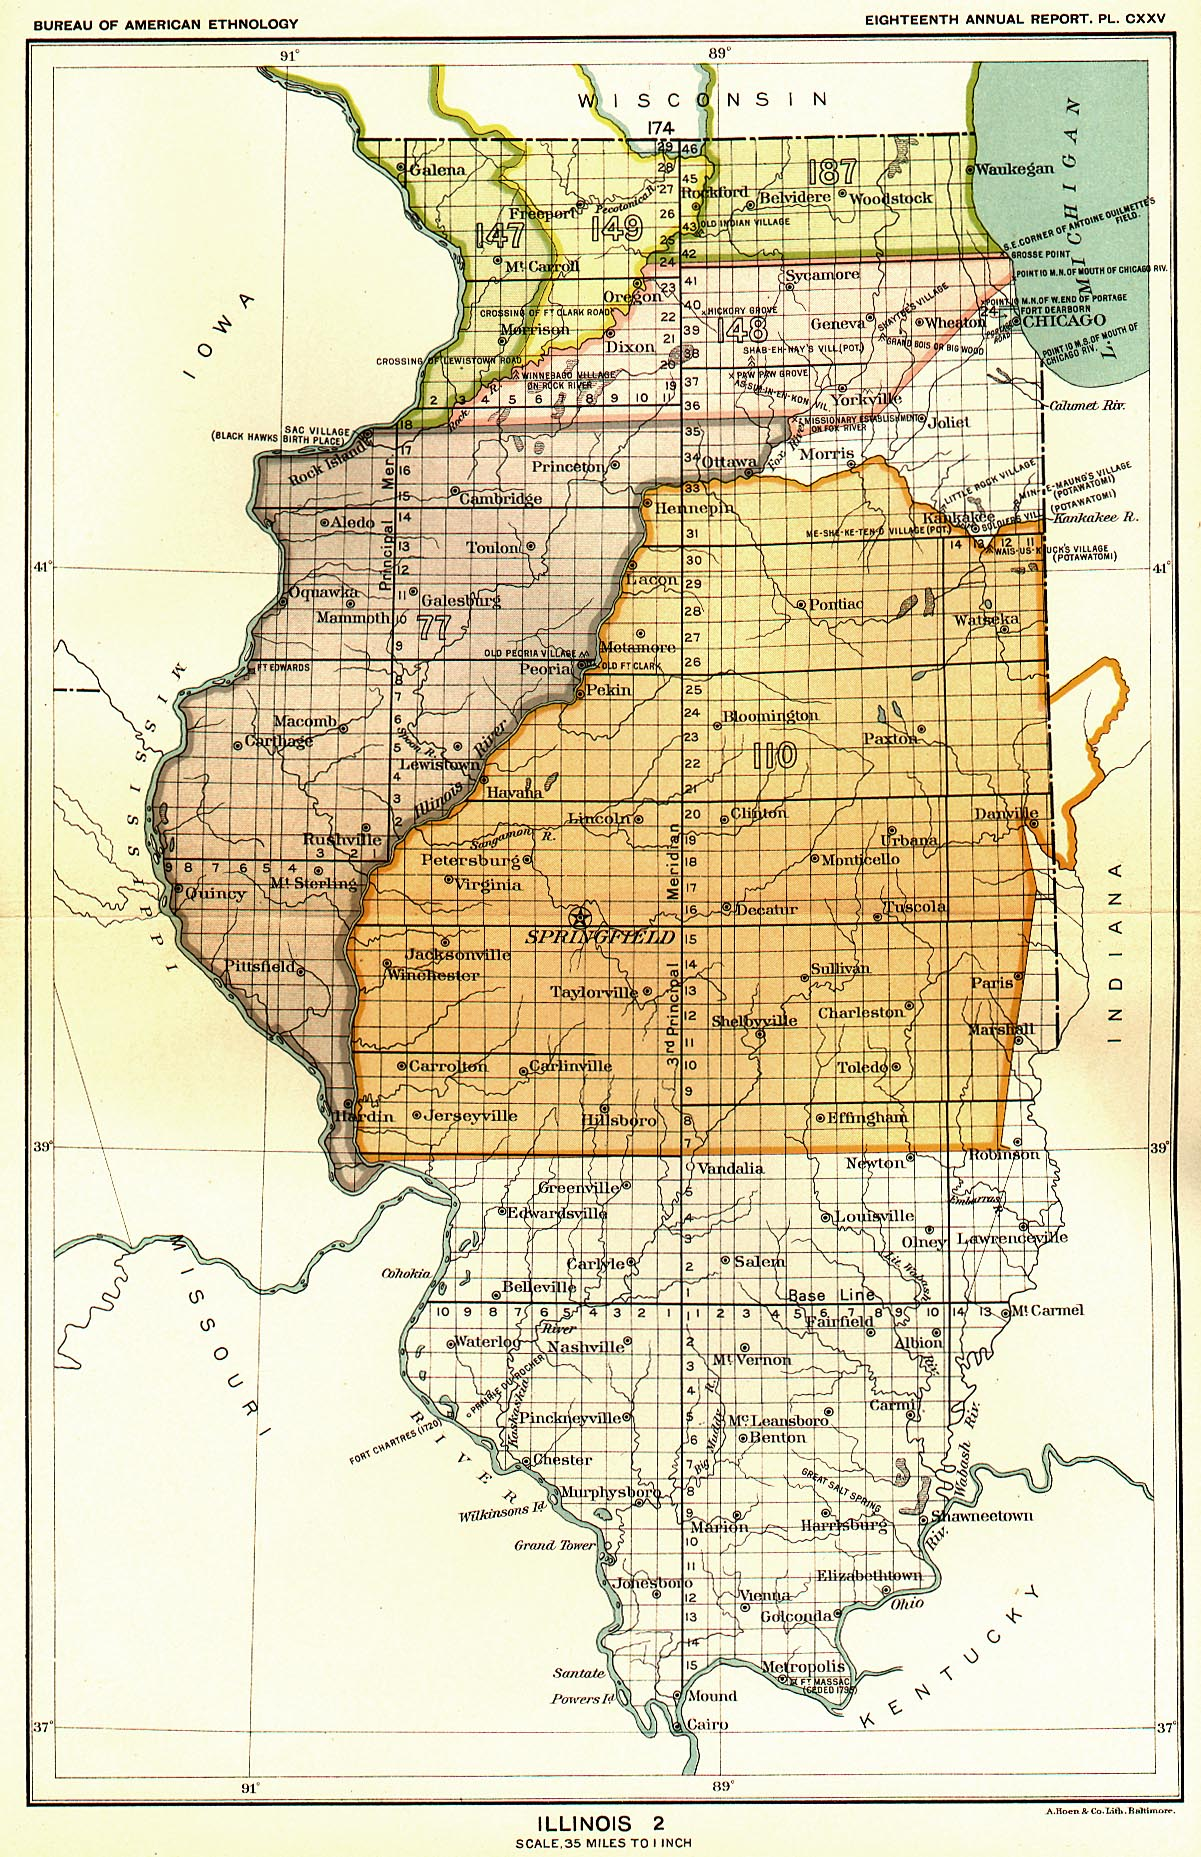 Indian Land Cessions In The U S Illinois Map United - Illinois on the us map